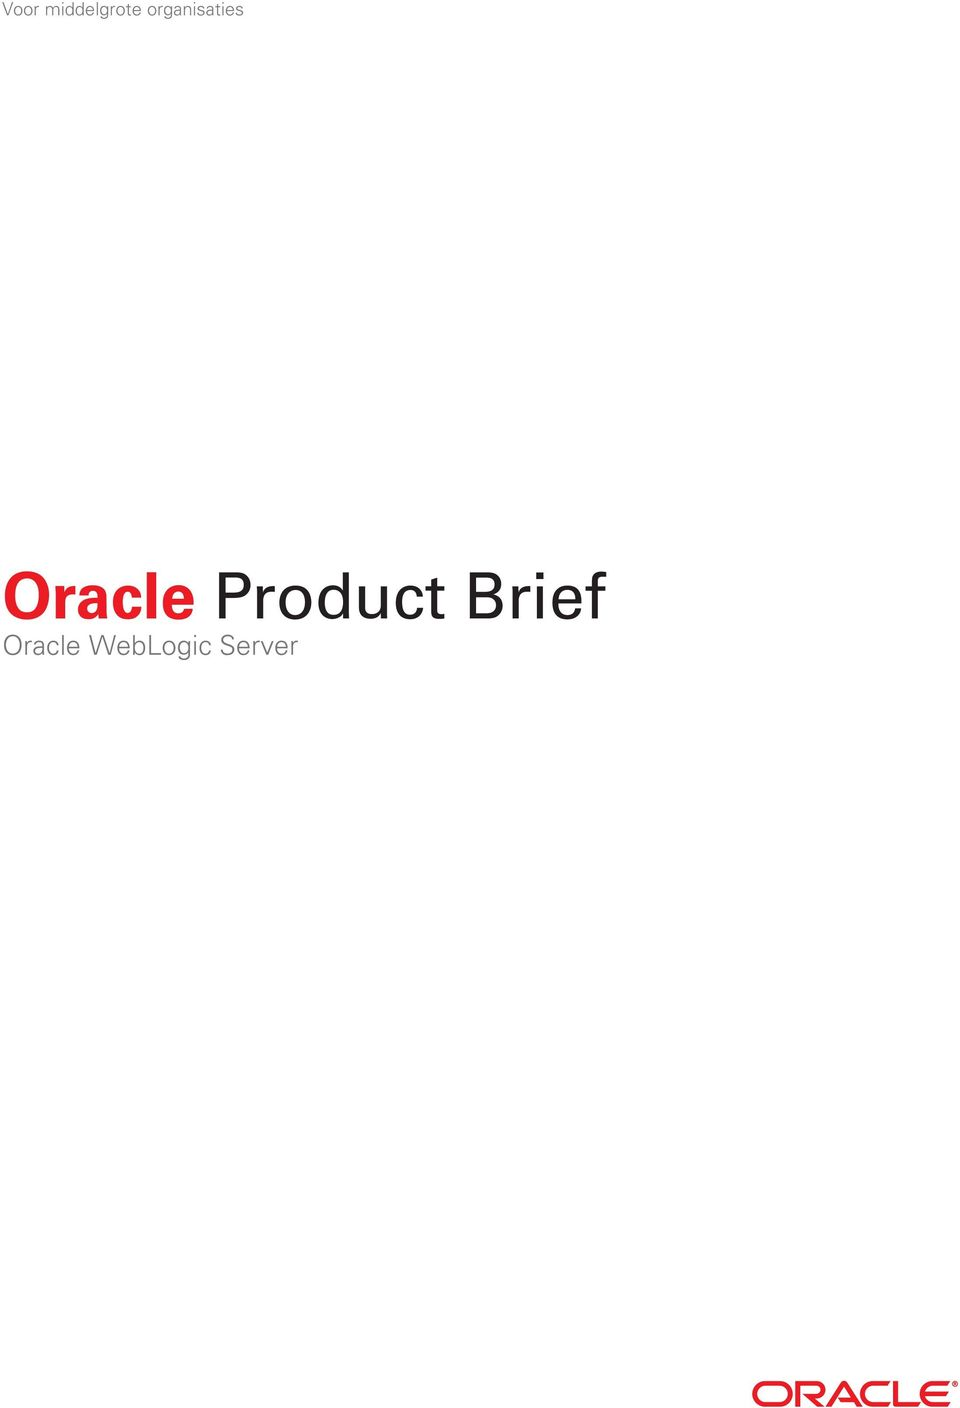 Oracle Product